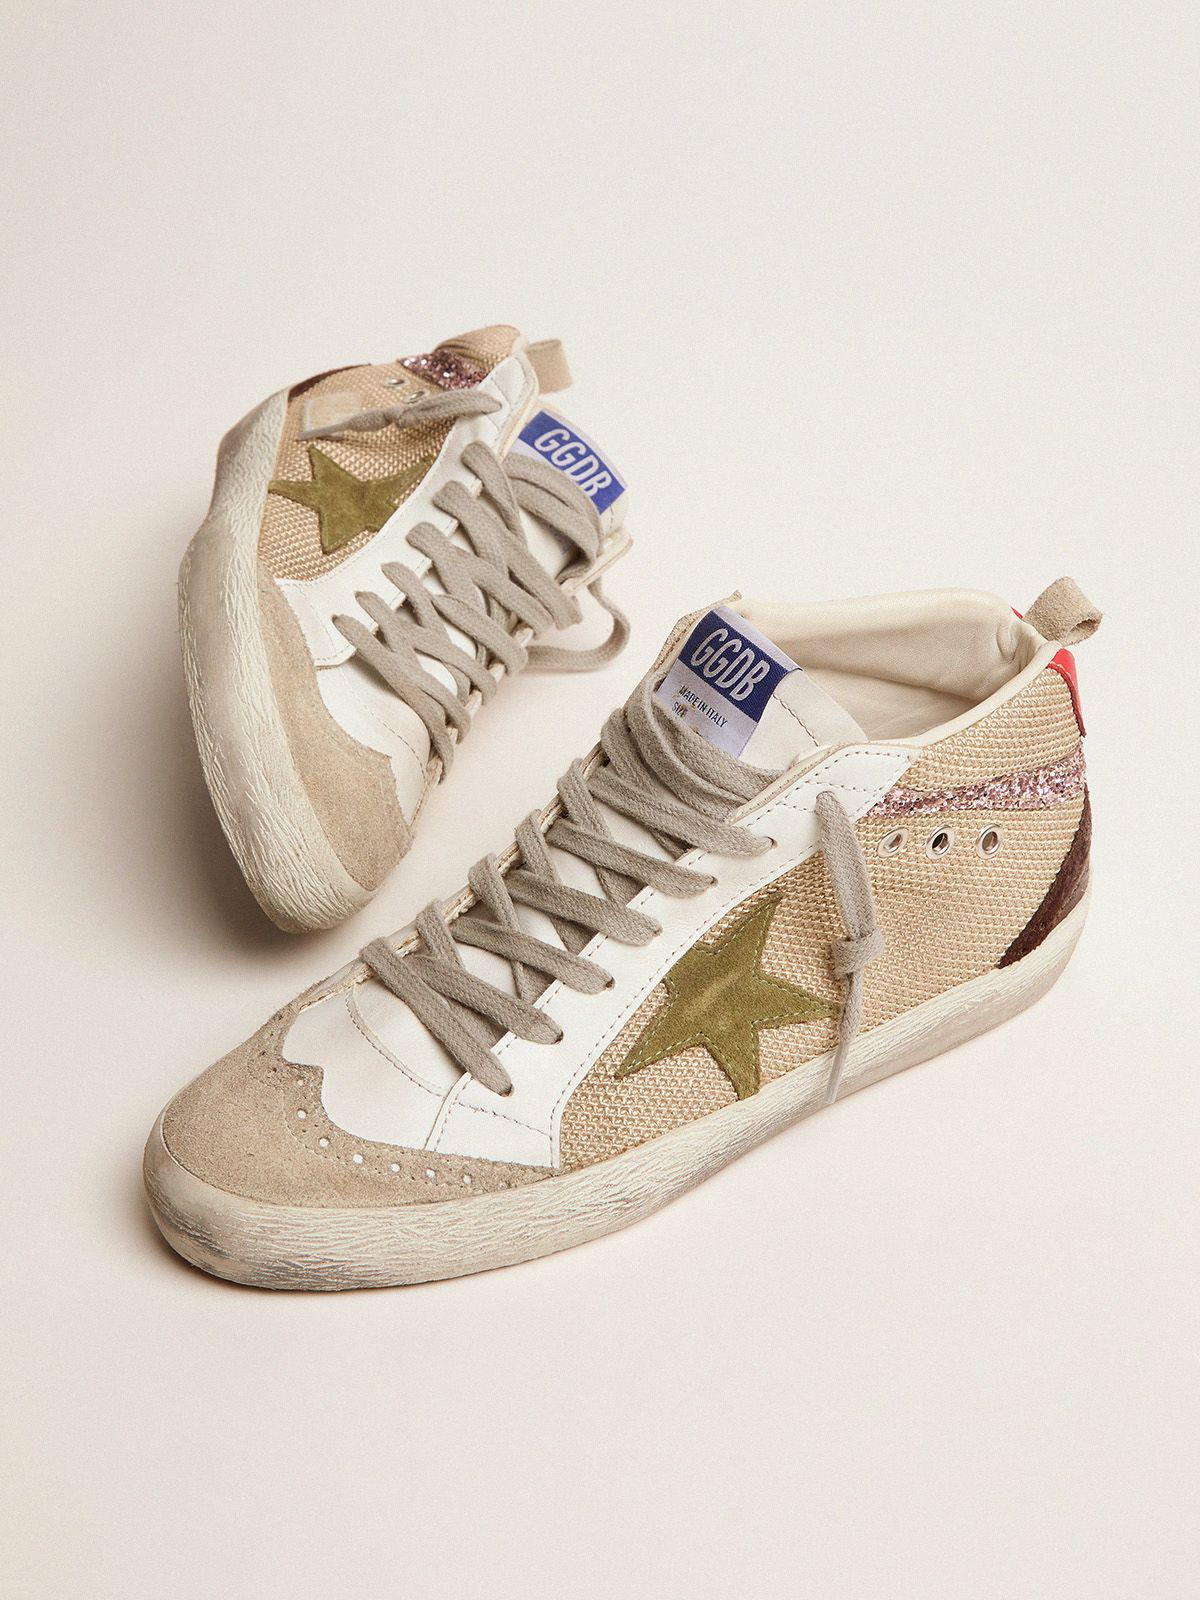 Mid Star sneakers in cream-colored mesh with suede and glitter details 1